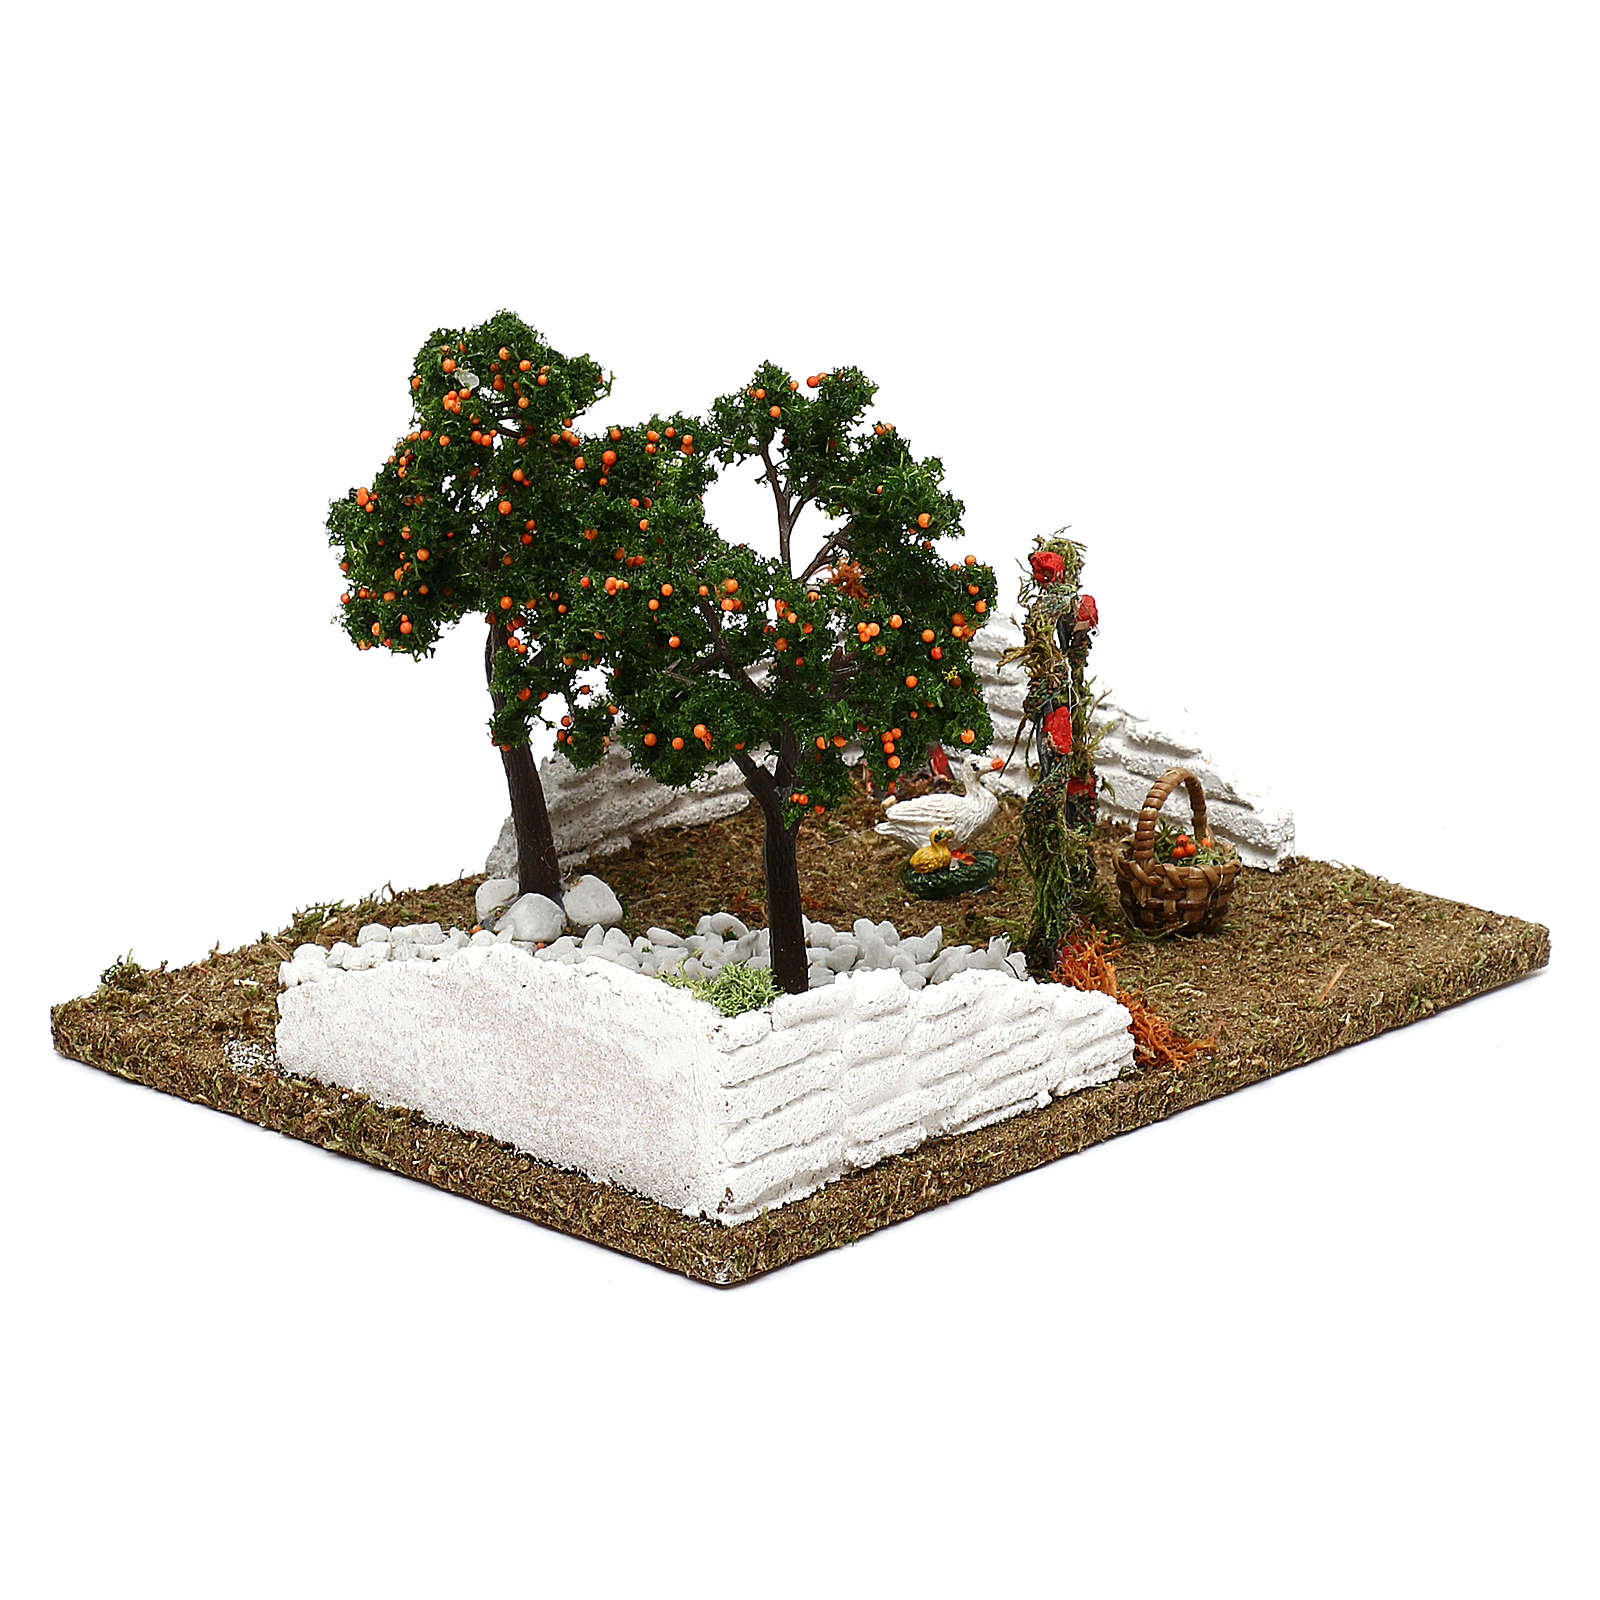 Garden with orange trees and arch for Nativity scene 8 cm 4